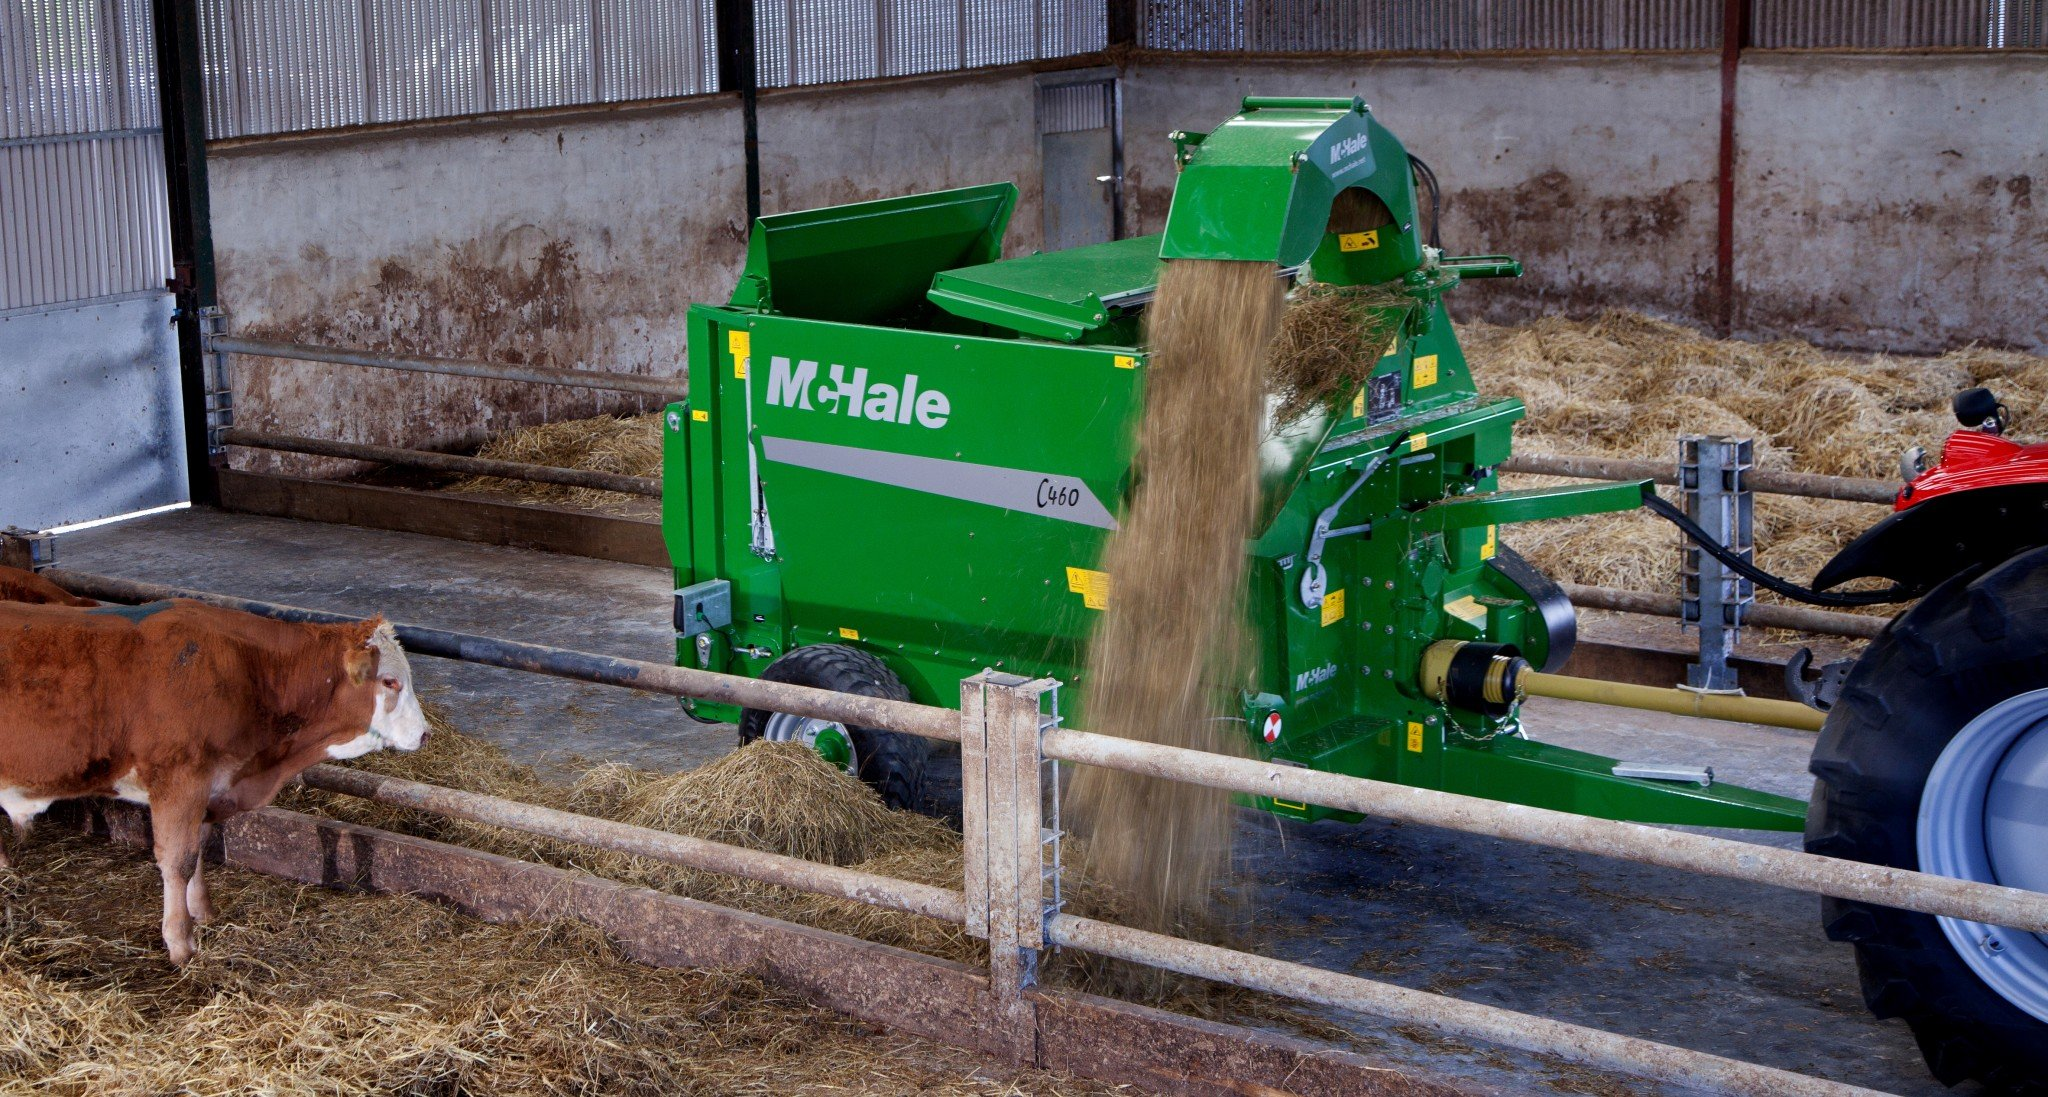 McHale English – C460-Trailed Silage Feeder and Straw Blower